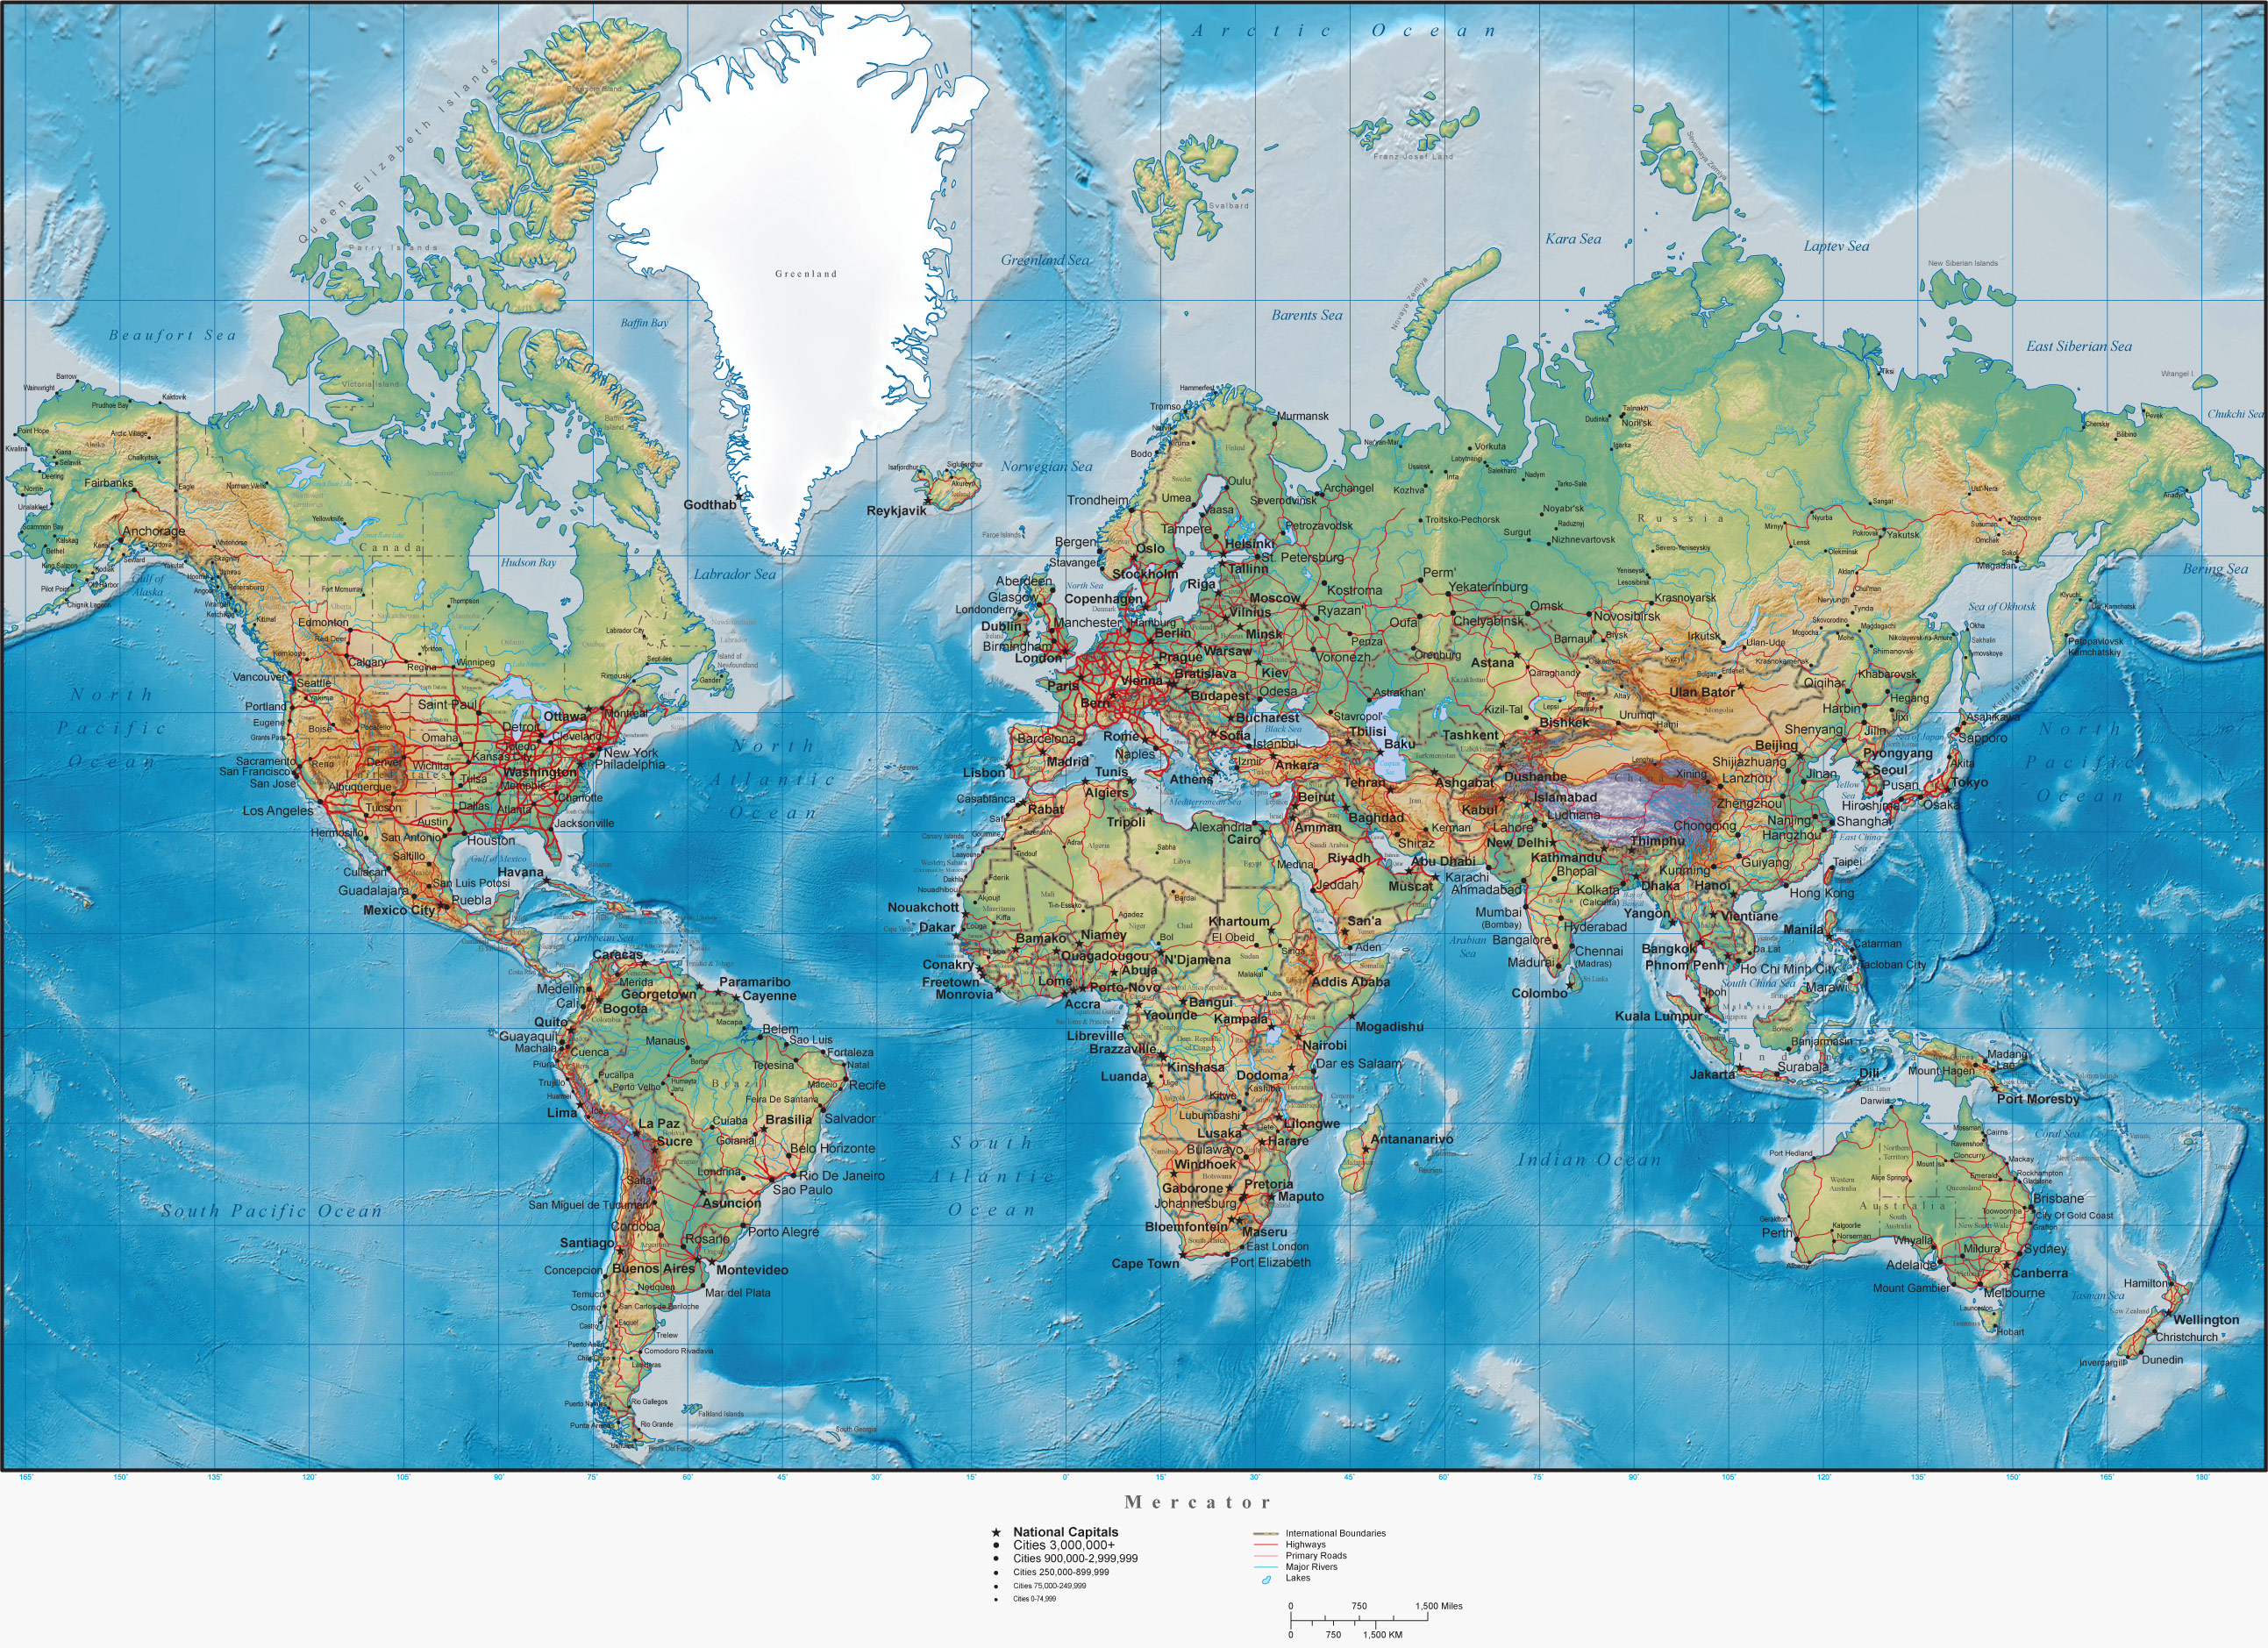 Physical Map Of The World World Physical Map With Cities • Mapsof.net